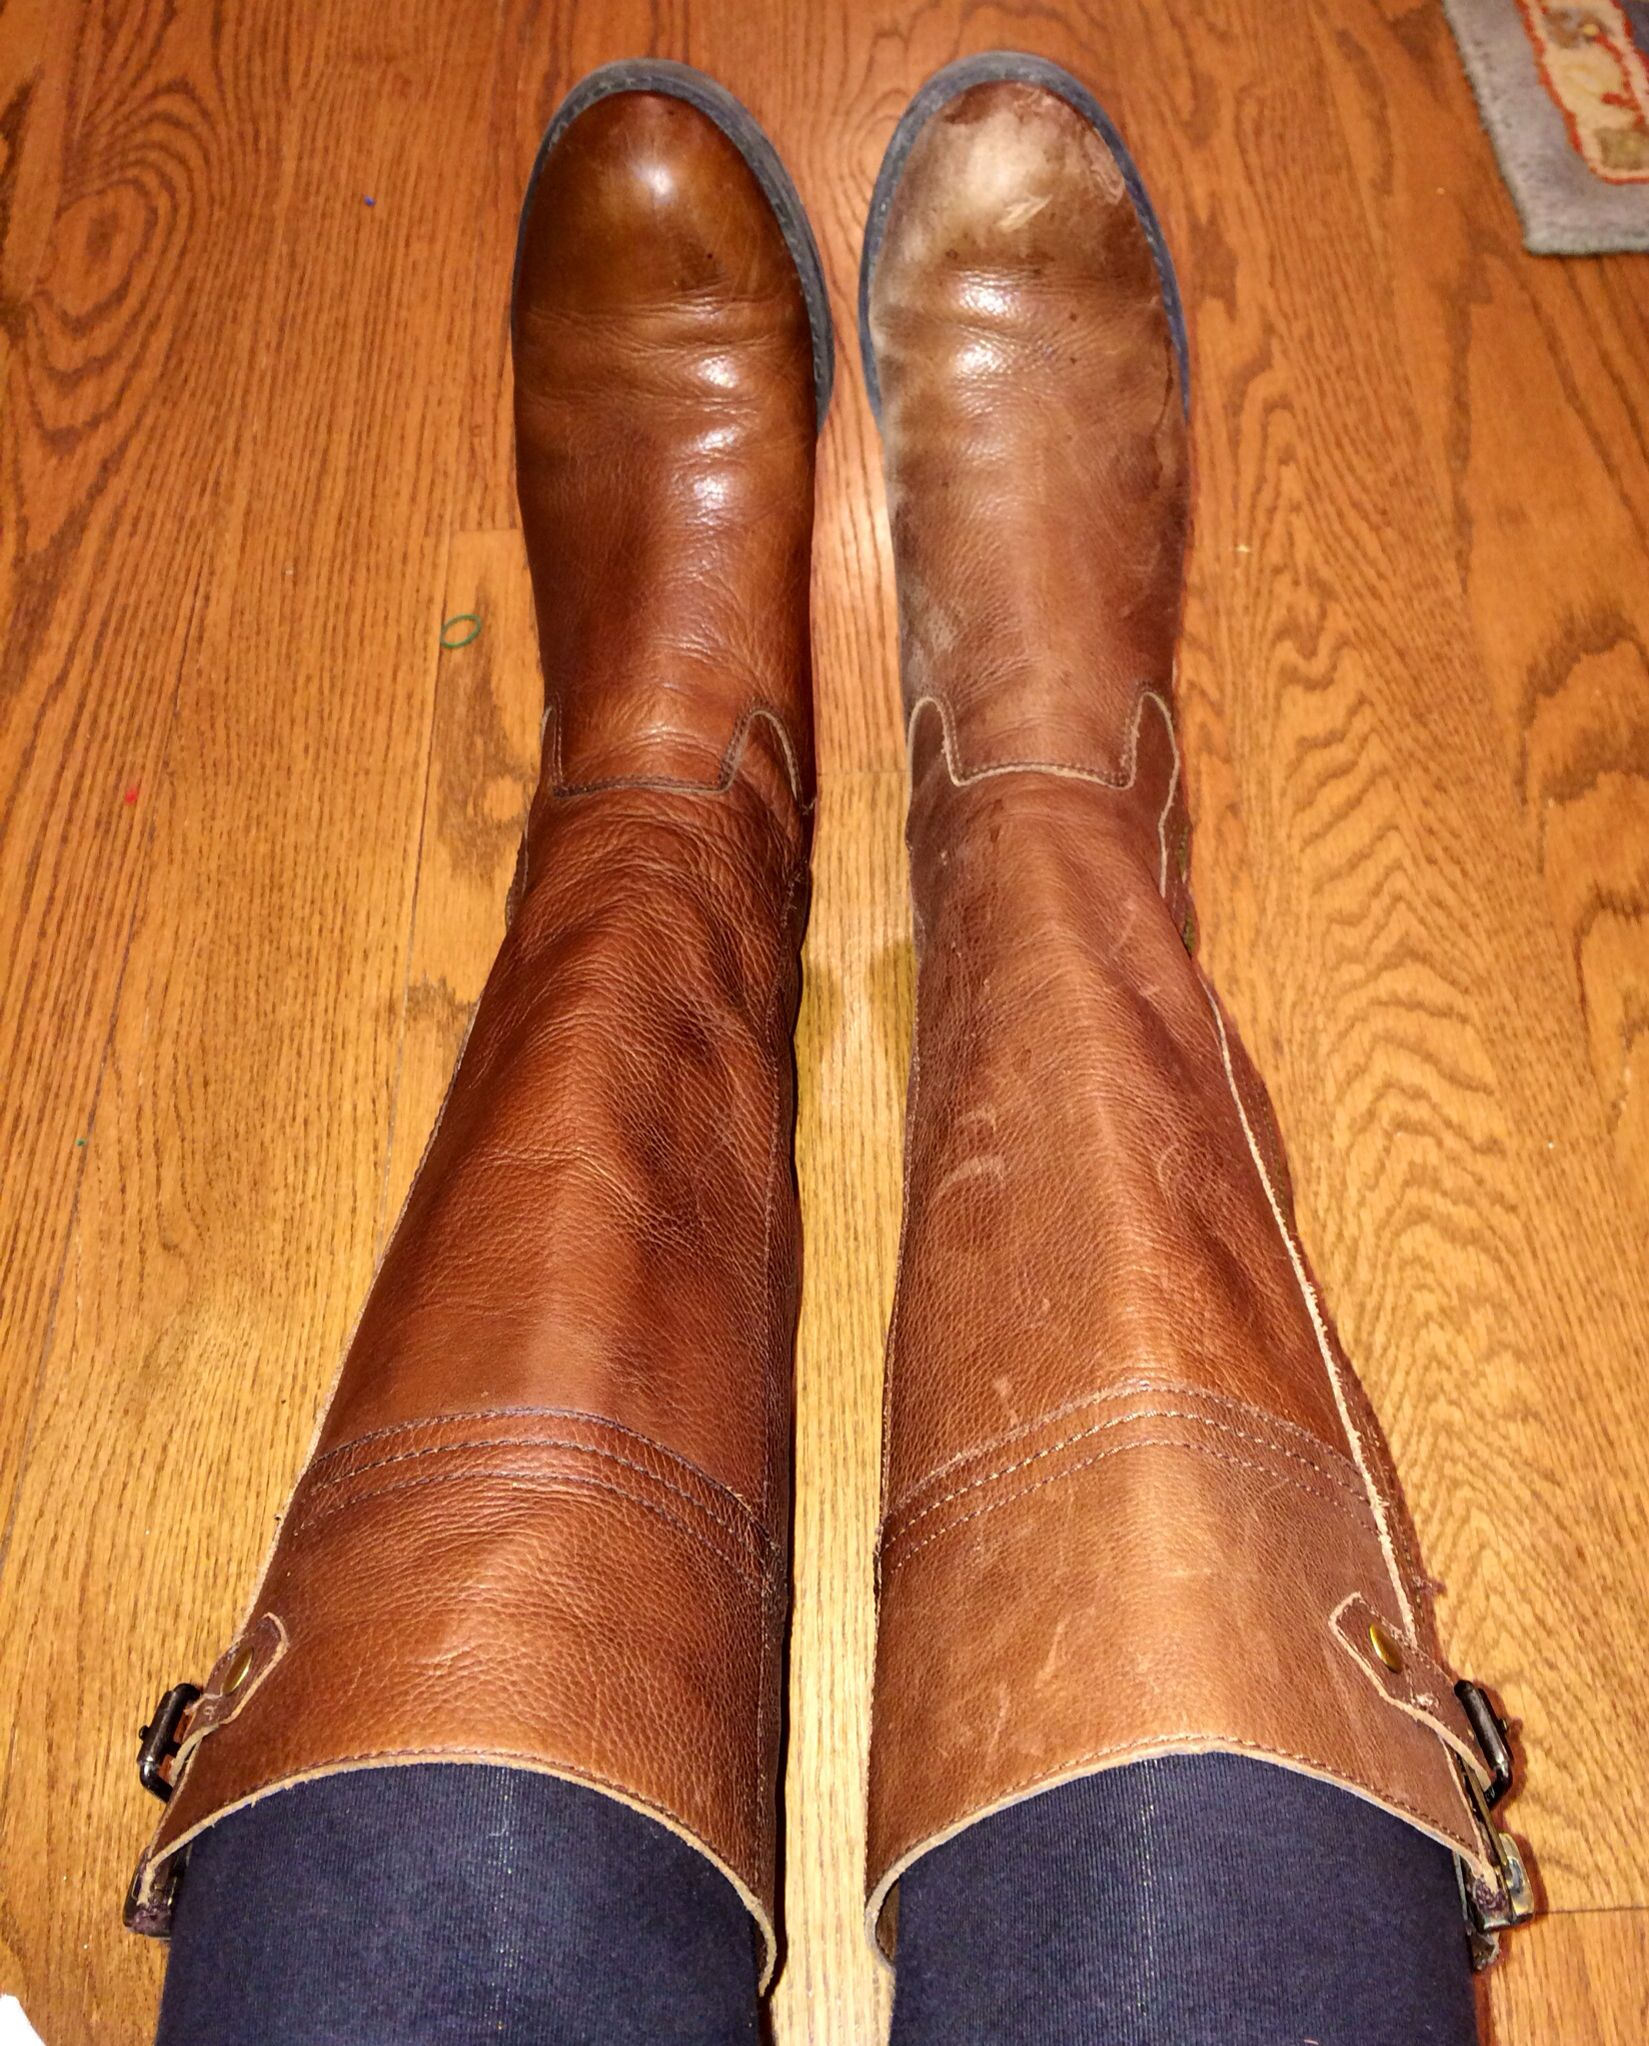 For worn, beat up or overly loved riding boots, use Annie Sloan wax to make them look brand new! Such a simple fix to make your favorite pair literally look as good as new.